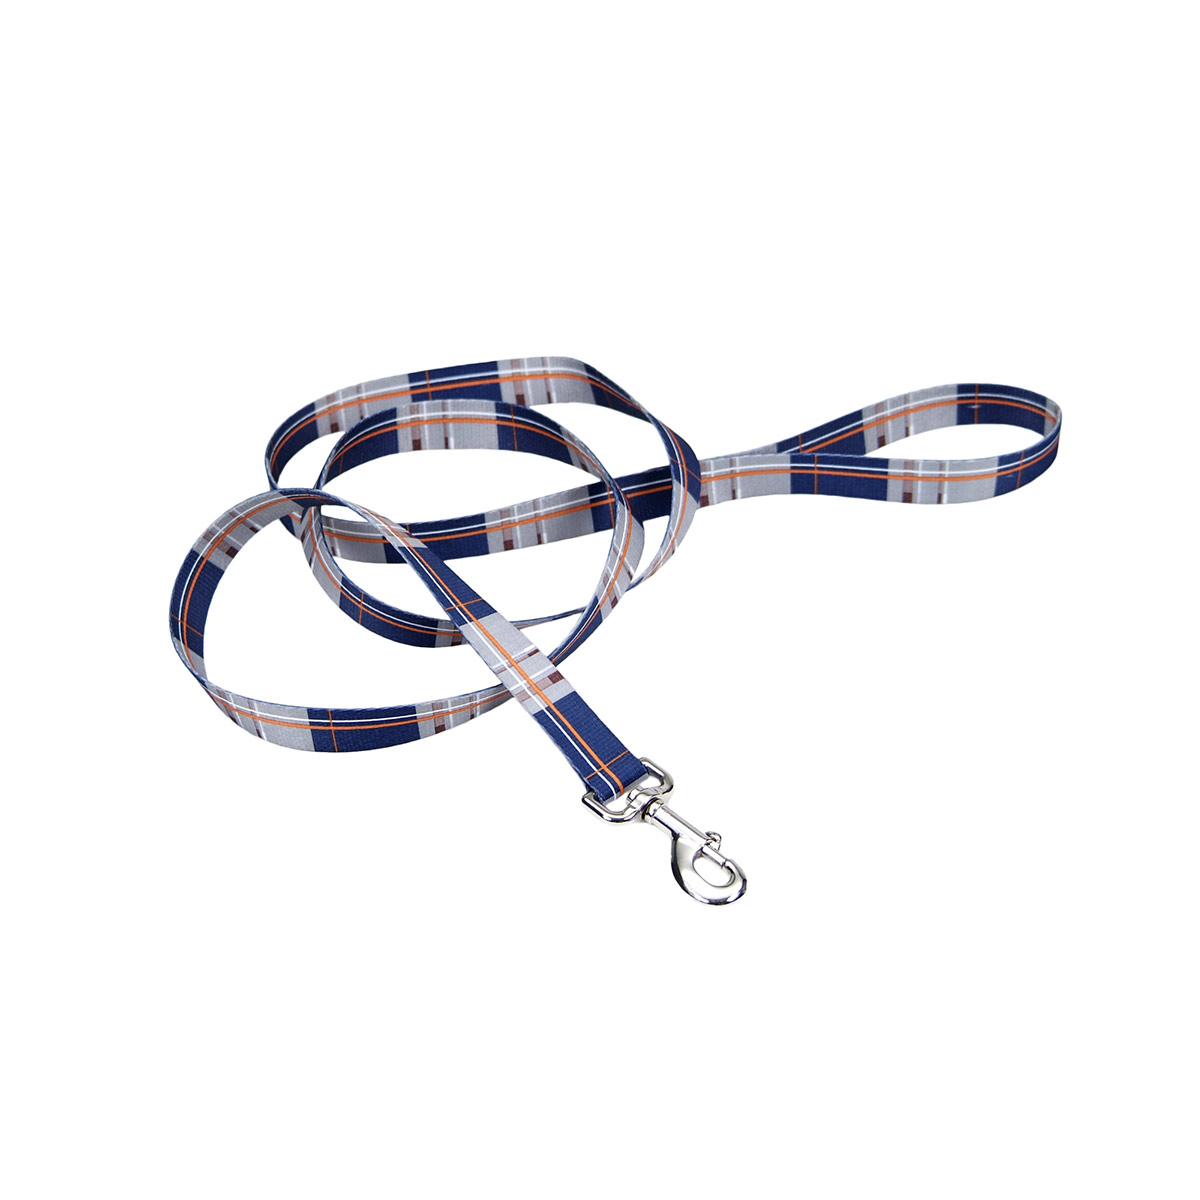 Coastal Leads 4 feet by 1 inch - Navy and Orange Plaid